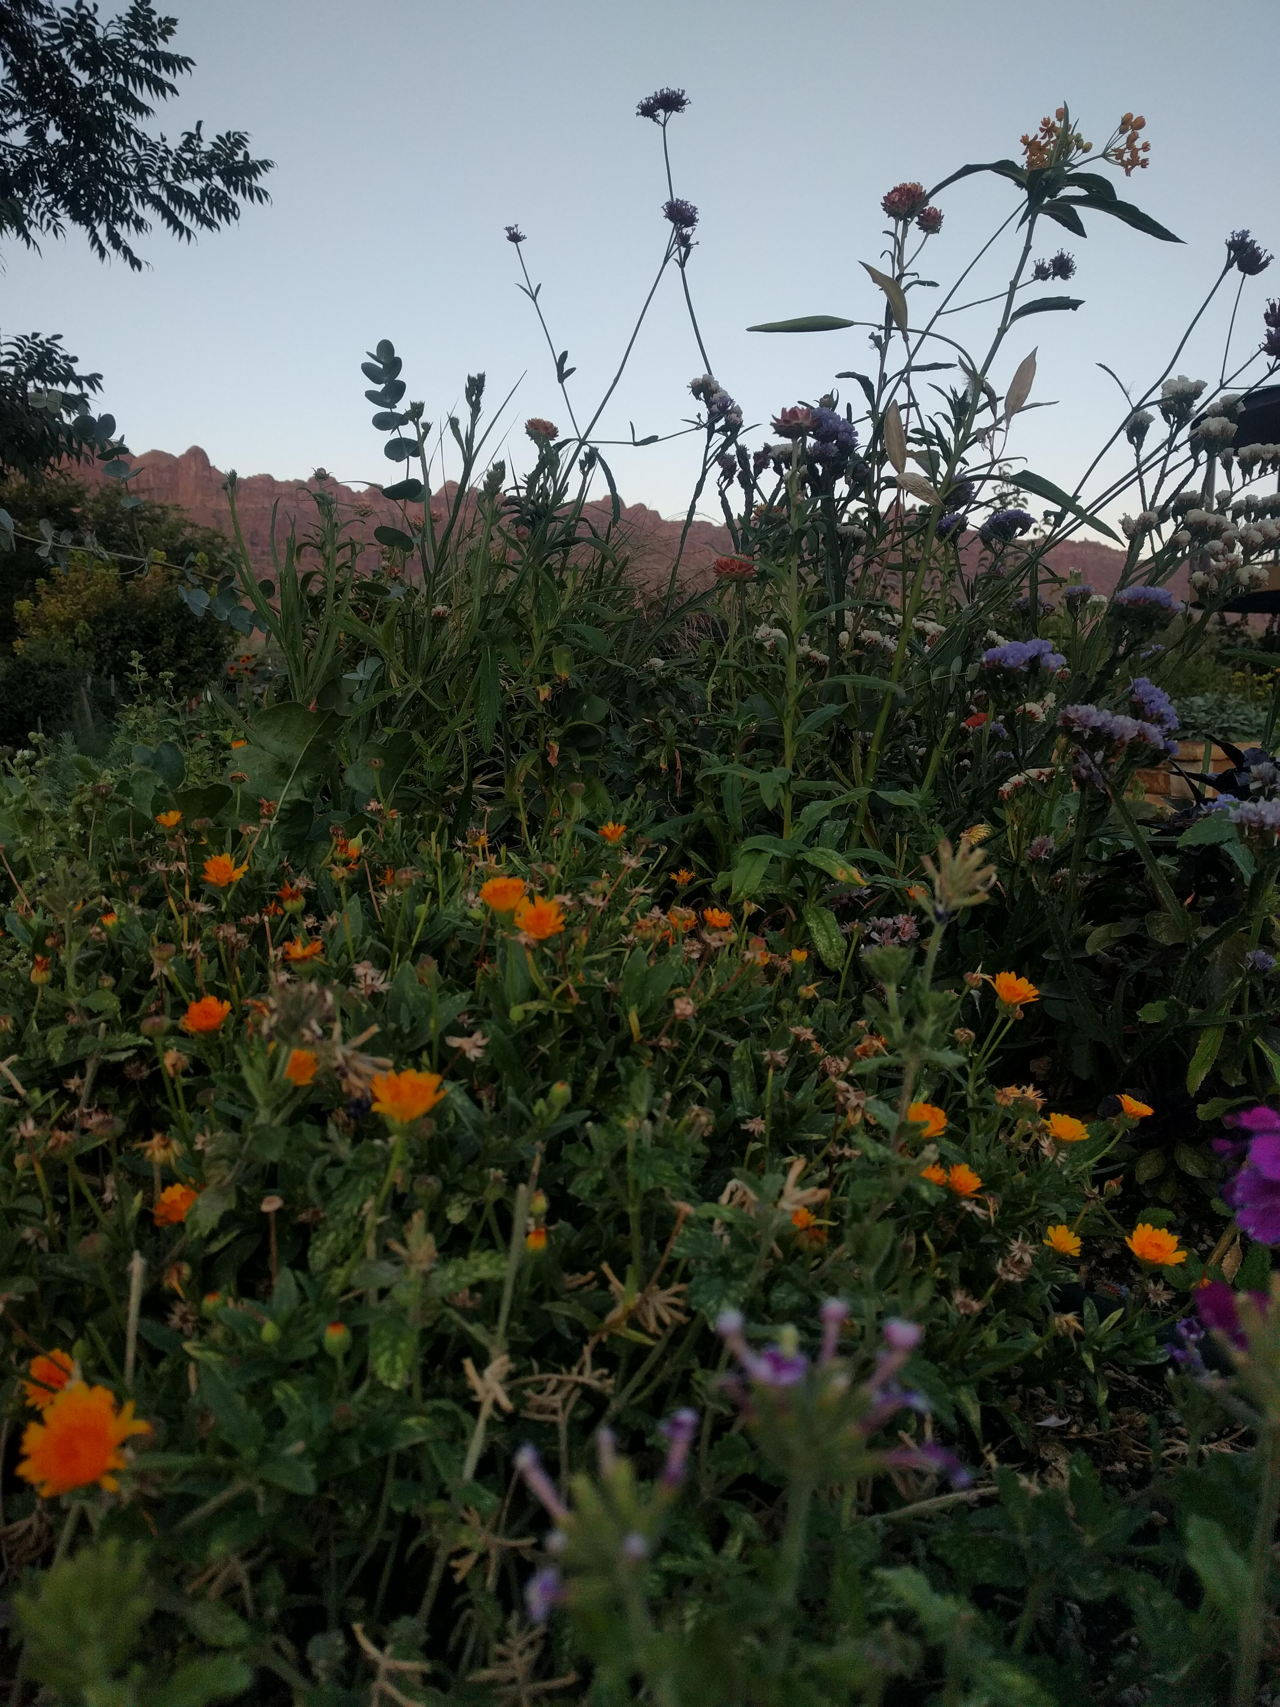 A forest of flowers and herbs at Easy Bee Farm in Moab, Utah // read about what it's like to harvest at the farm on www.bridgidgallagher.com >>